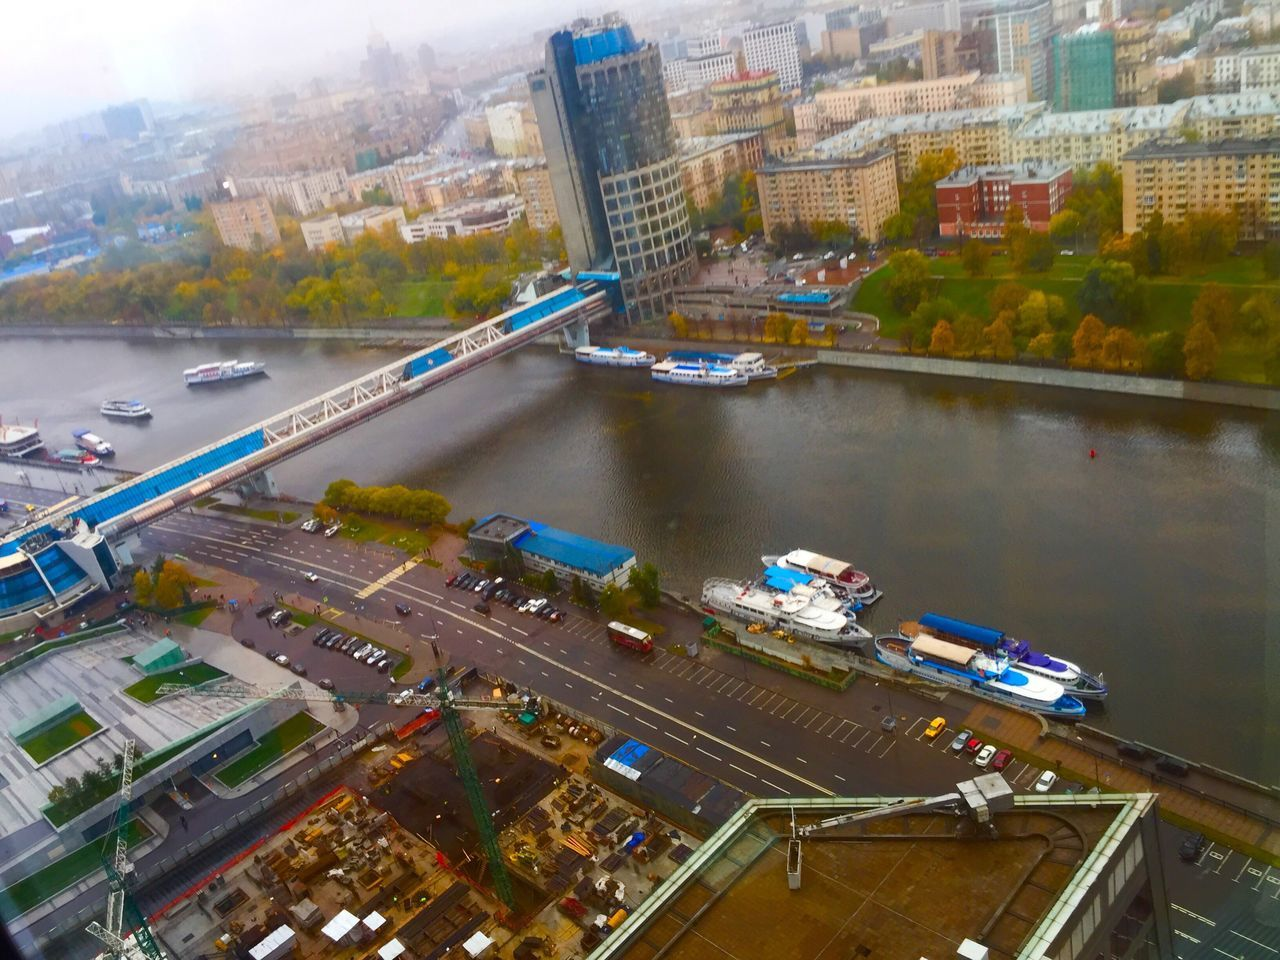 Moscow City Lavoro City Architecture Building Exterior High Angle View Built Structure Cityscape Water Skyscraper River Transportation No People Outdoors Day Tree Modern Urban Skyline Nautical Vessel Reinyday Best Place On Earth Welcome My Country My People